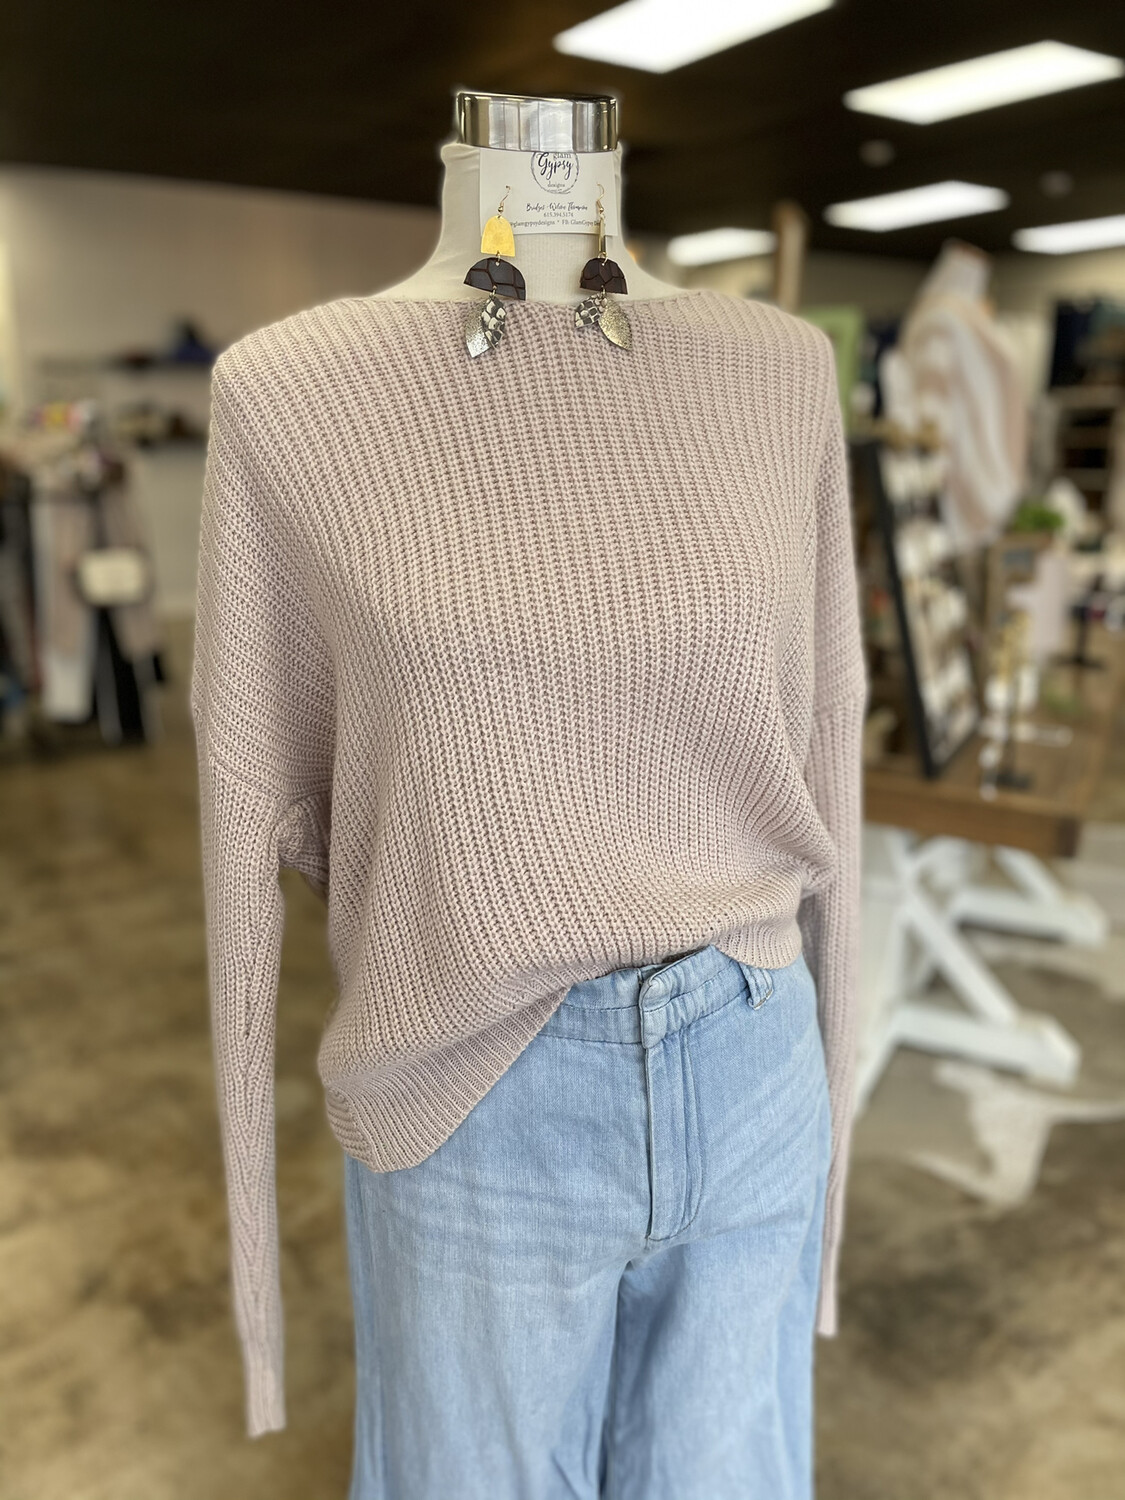 Main Strip Pale Pink Open Back Sweater - S